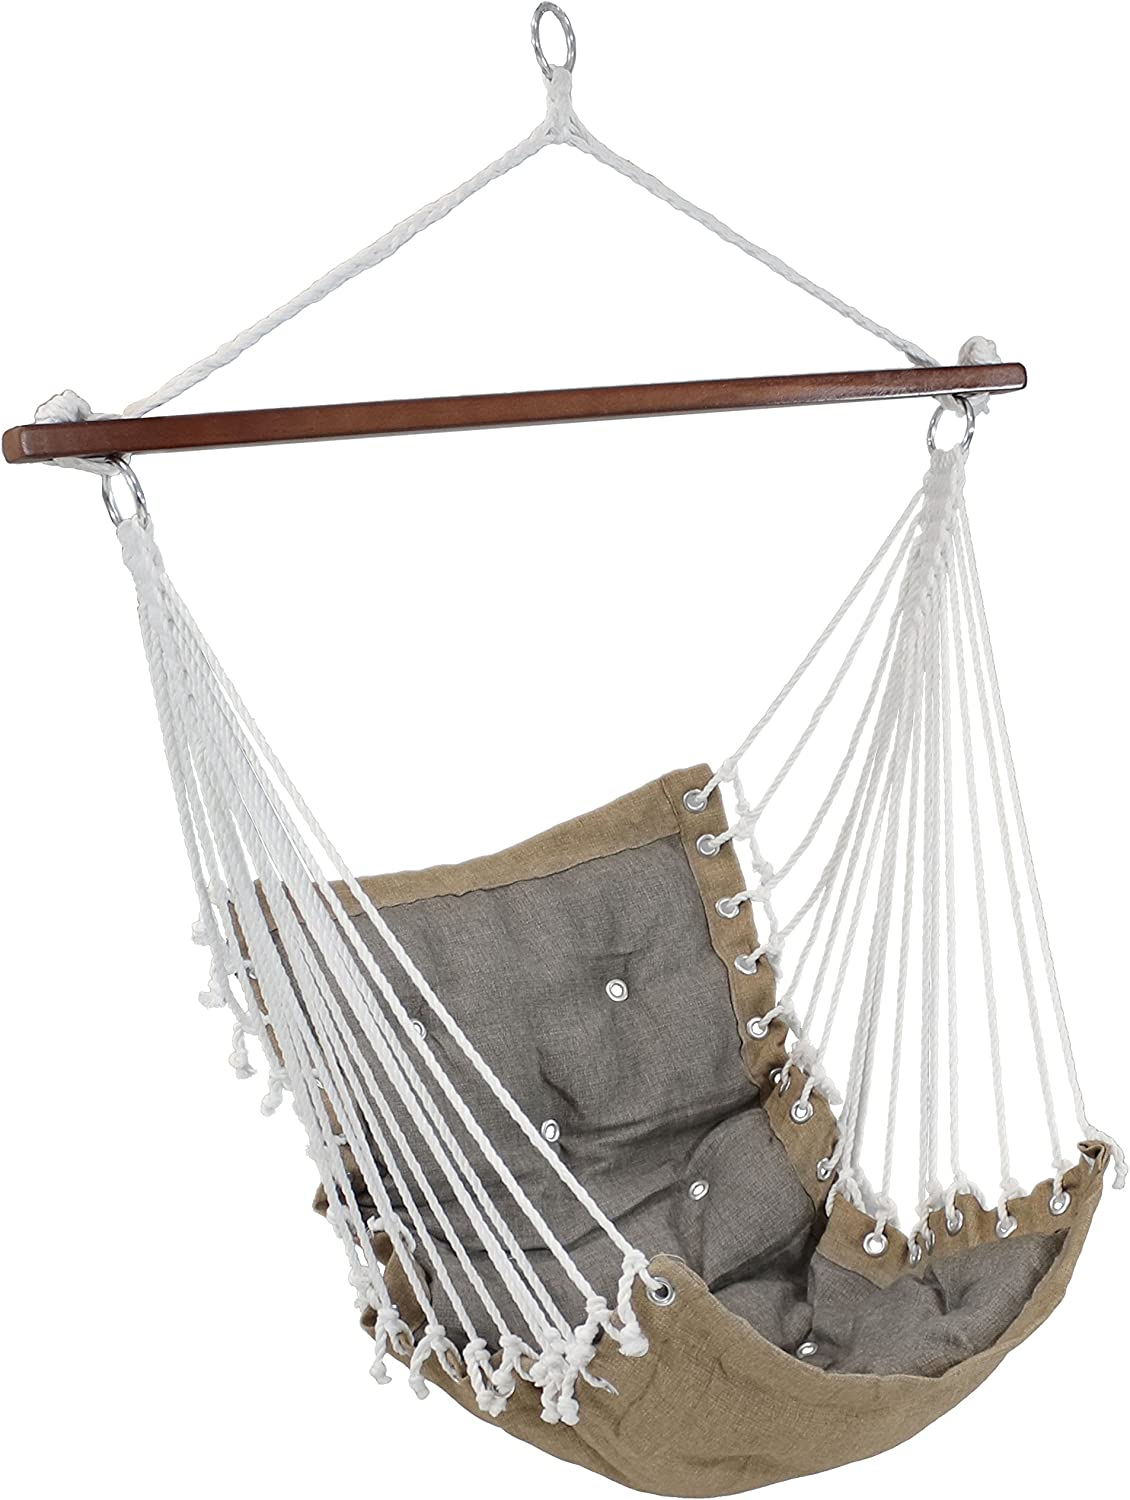 Sunnydaze Tufted Victorian Hammock Chair Swing, Indoor or Outdoor Hanging Seat, Sturdy 300 Pound Weight Capacity, Gray